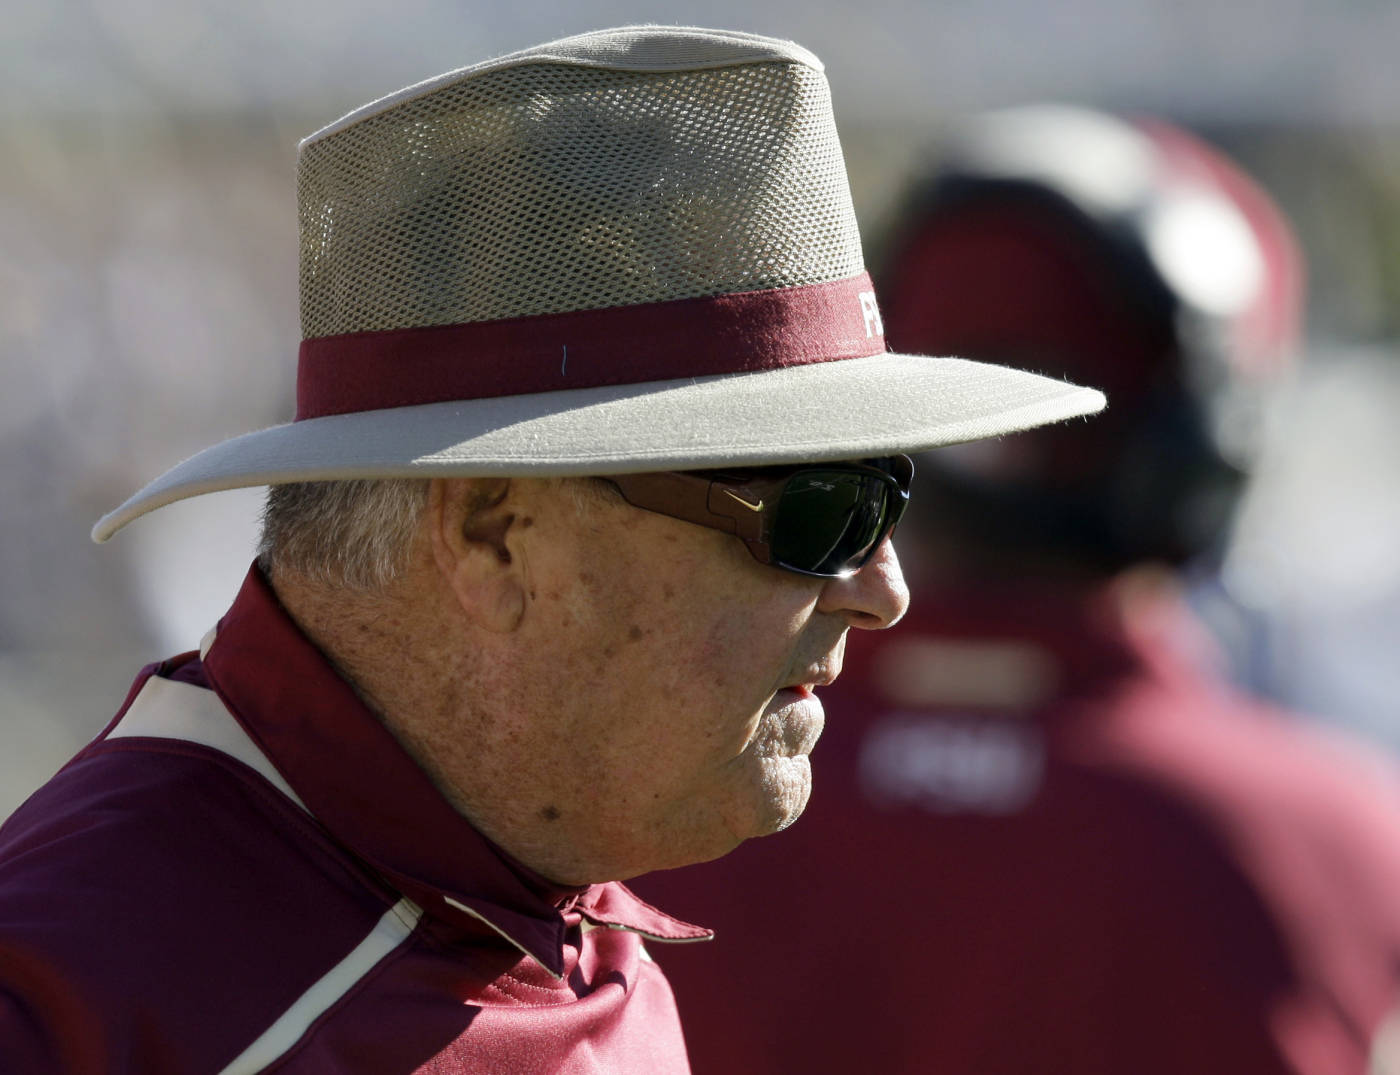 Florida State coach Bobby Bowden looks on during the second half against Wake Forest in an NCAA college football game in Winston-Salem, N.C., Saturday, Nov. 14, 2009. Florida State won, 41-28. (AP Photo/Chuck Burton)